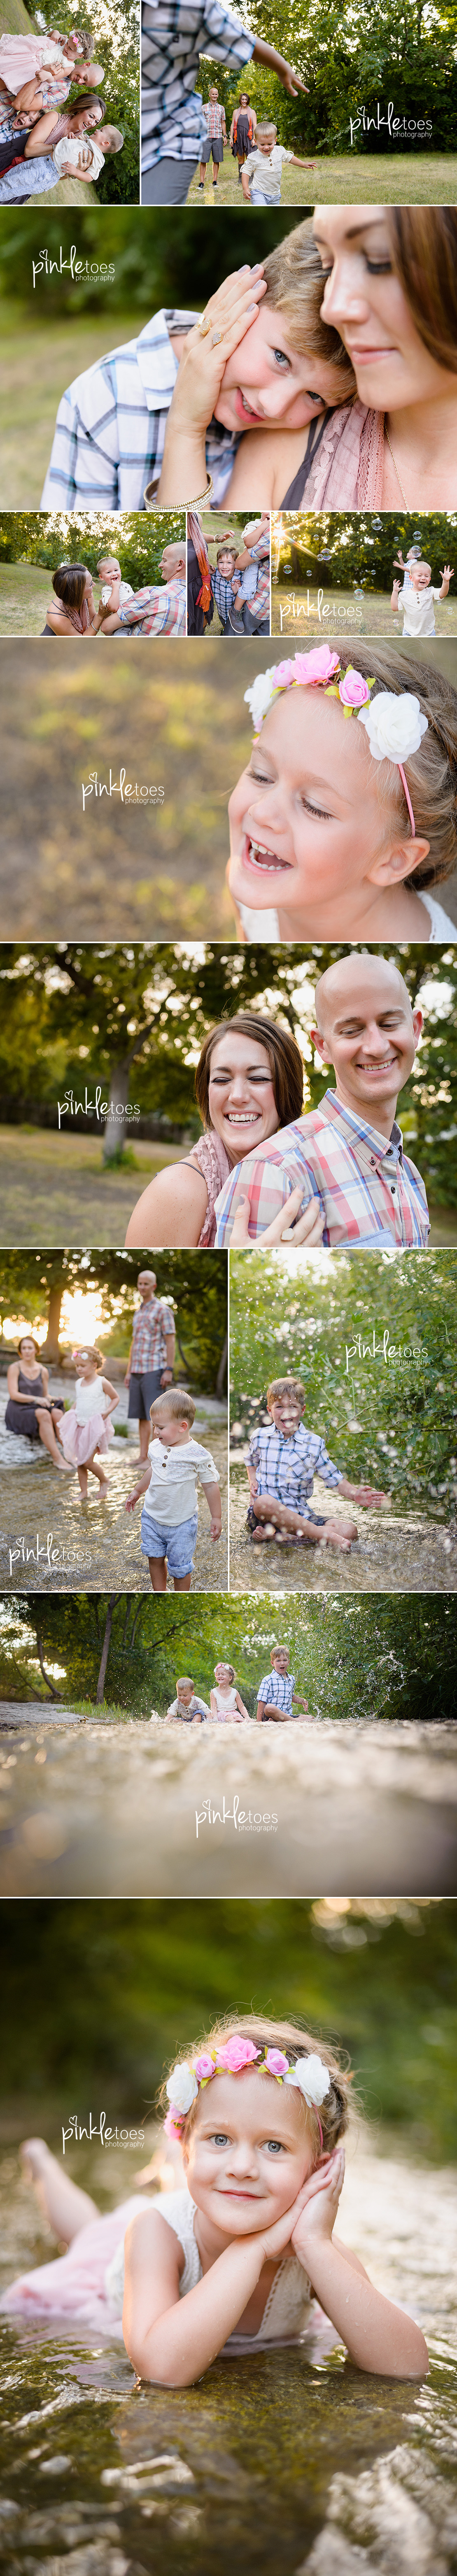 wb-pinkle-toes-austin-candid-modern-family-photography-water-creek